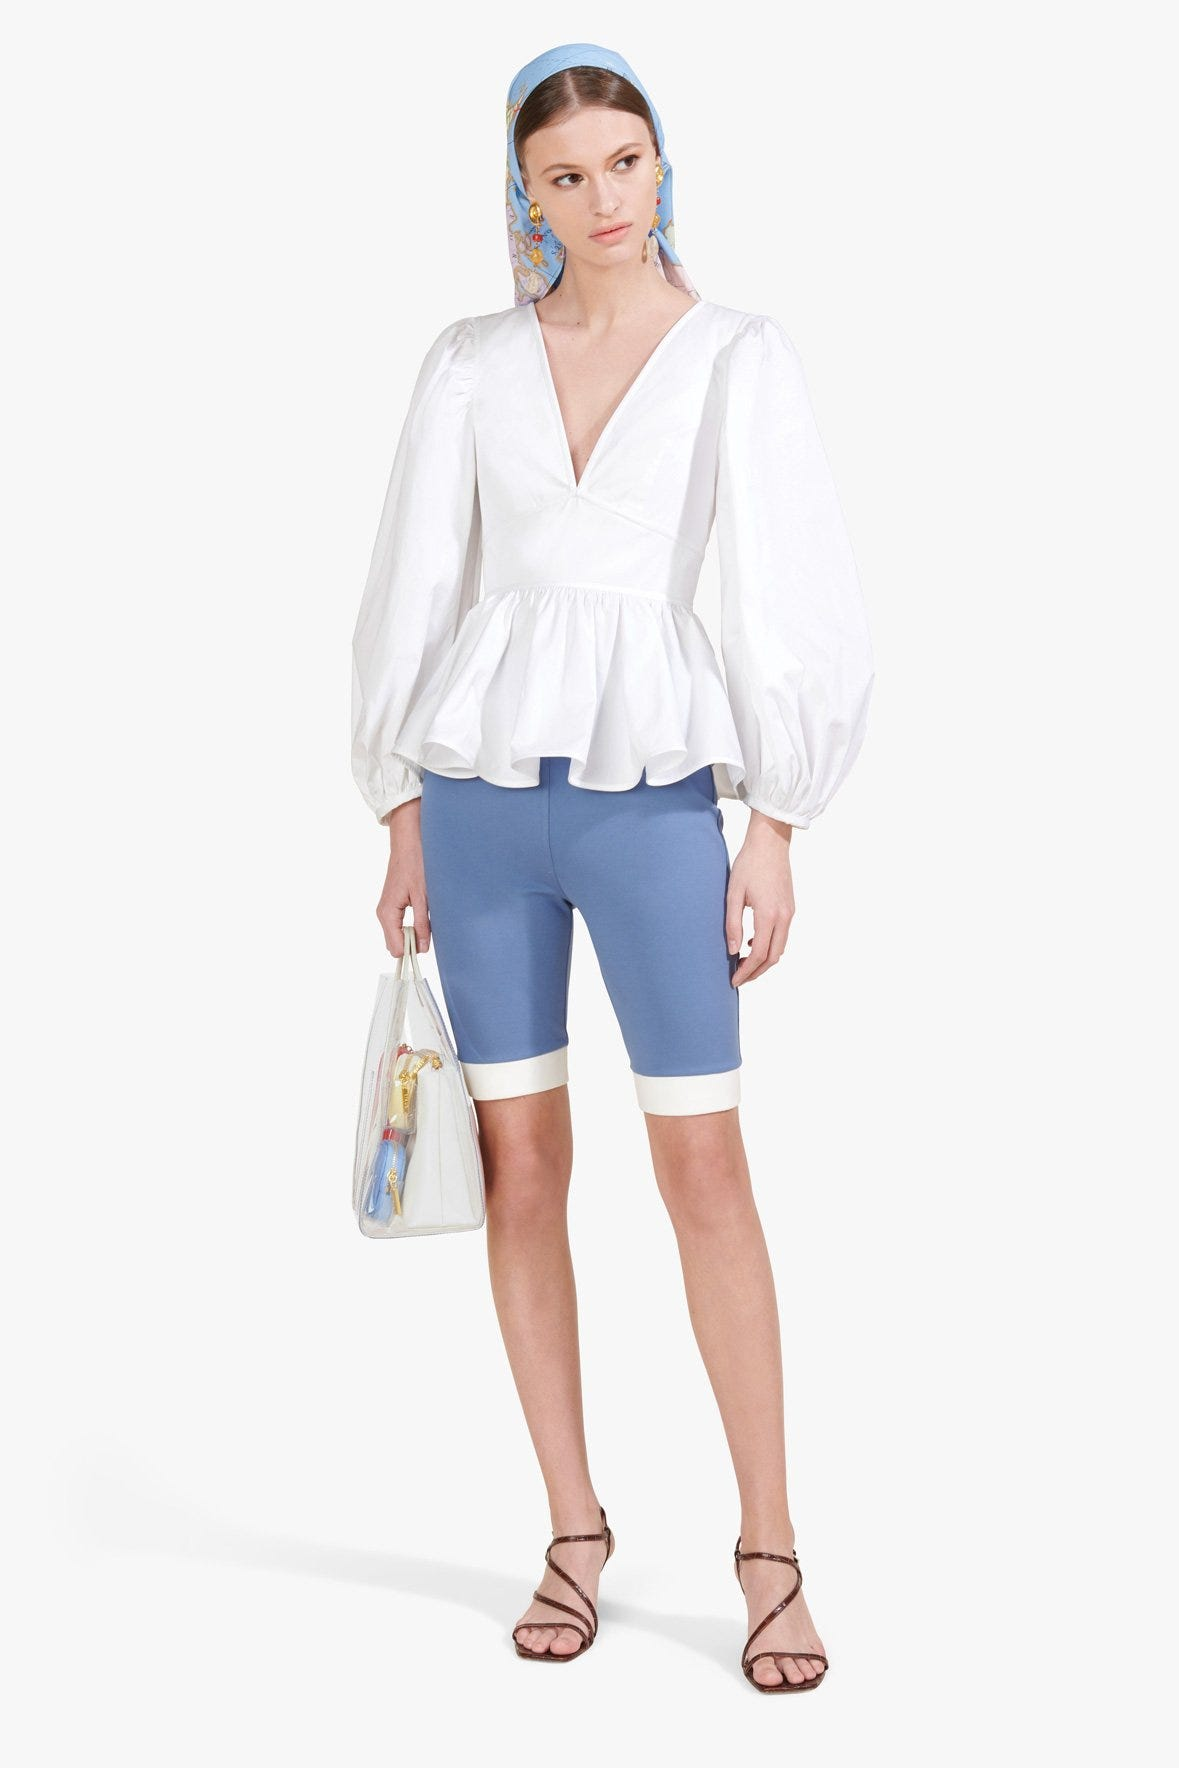 90ebaa88842 Bike Shorts Trend: How To Style, Best Ones To Buy 2019